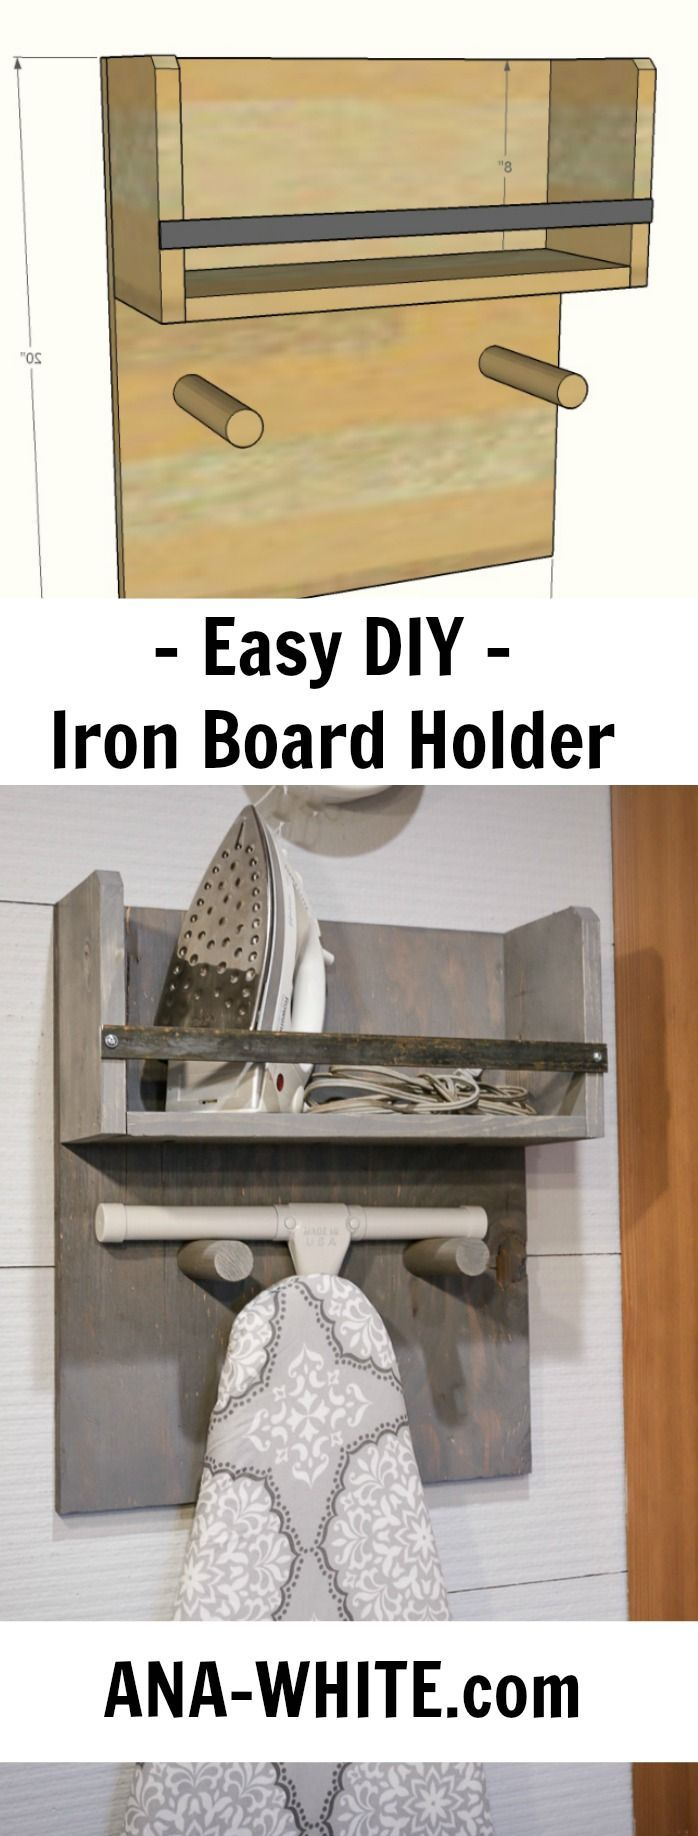 Ana White   Iron Board Holder - DIY Projects #woodworkingdesign